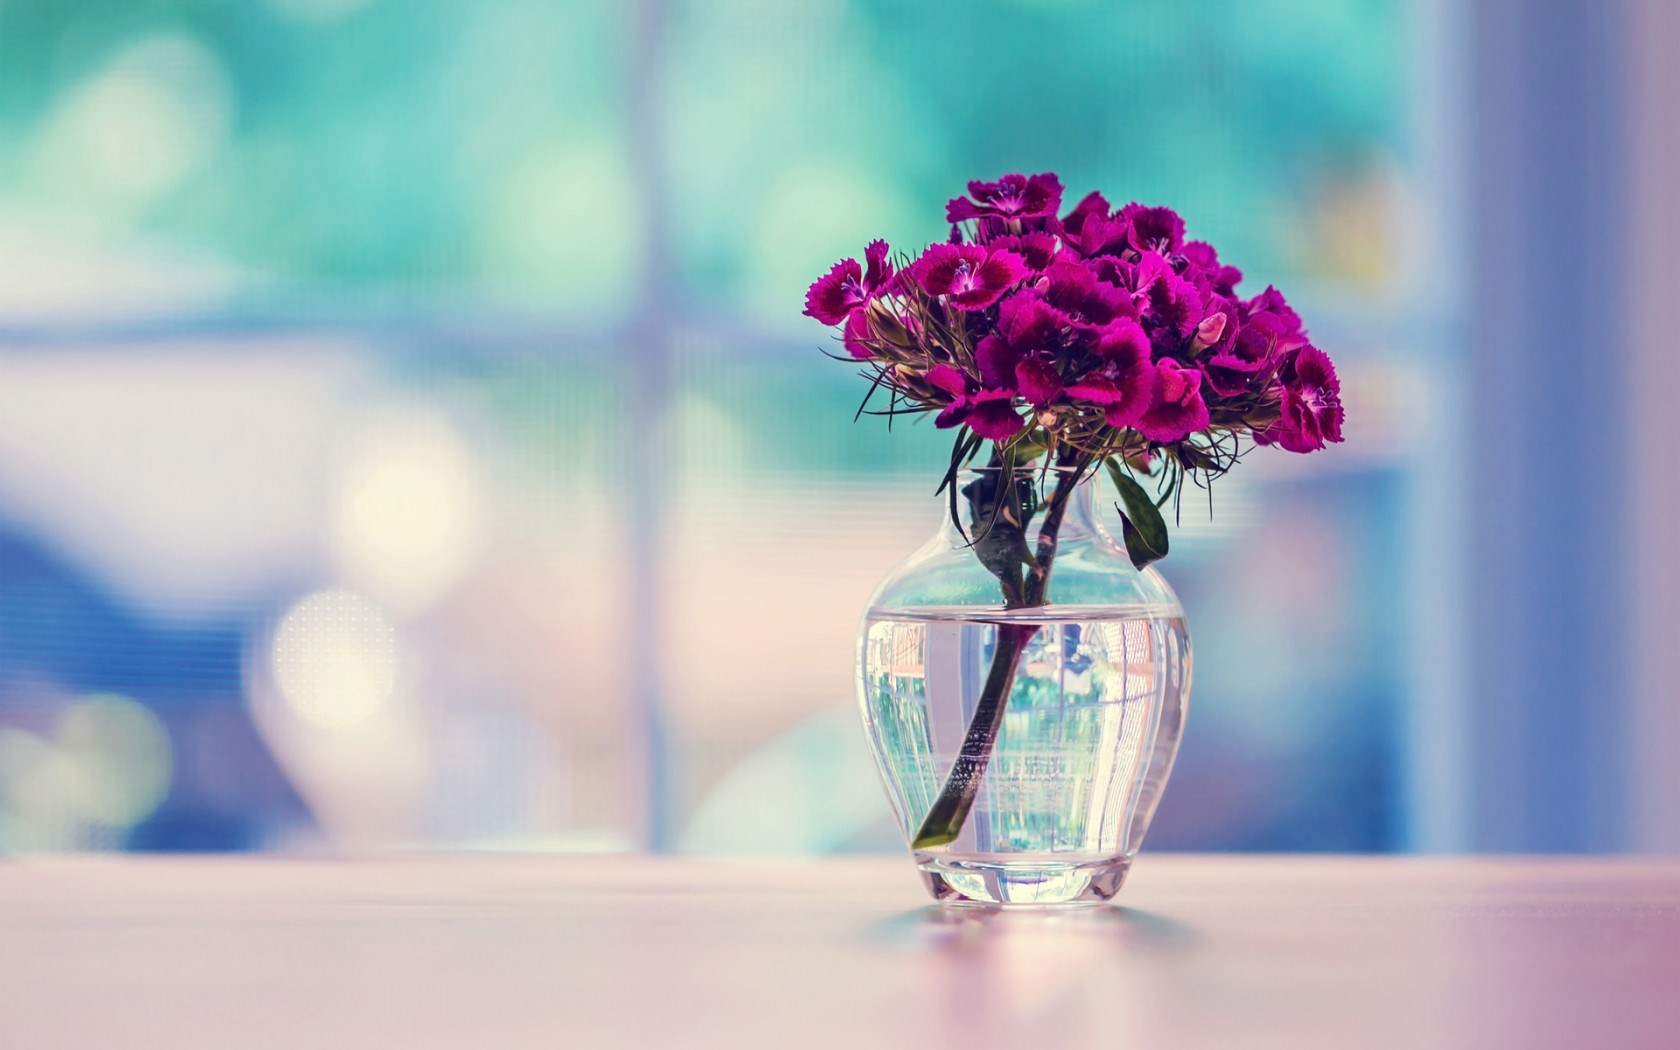 lovely vase pictures 39289